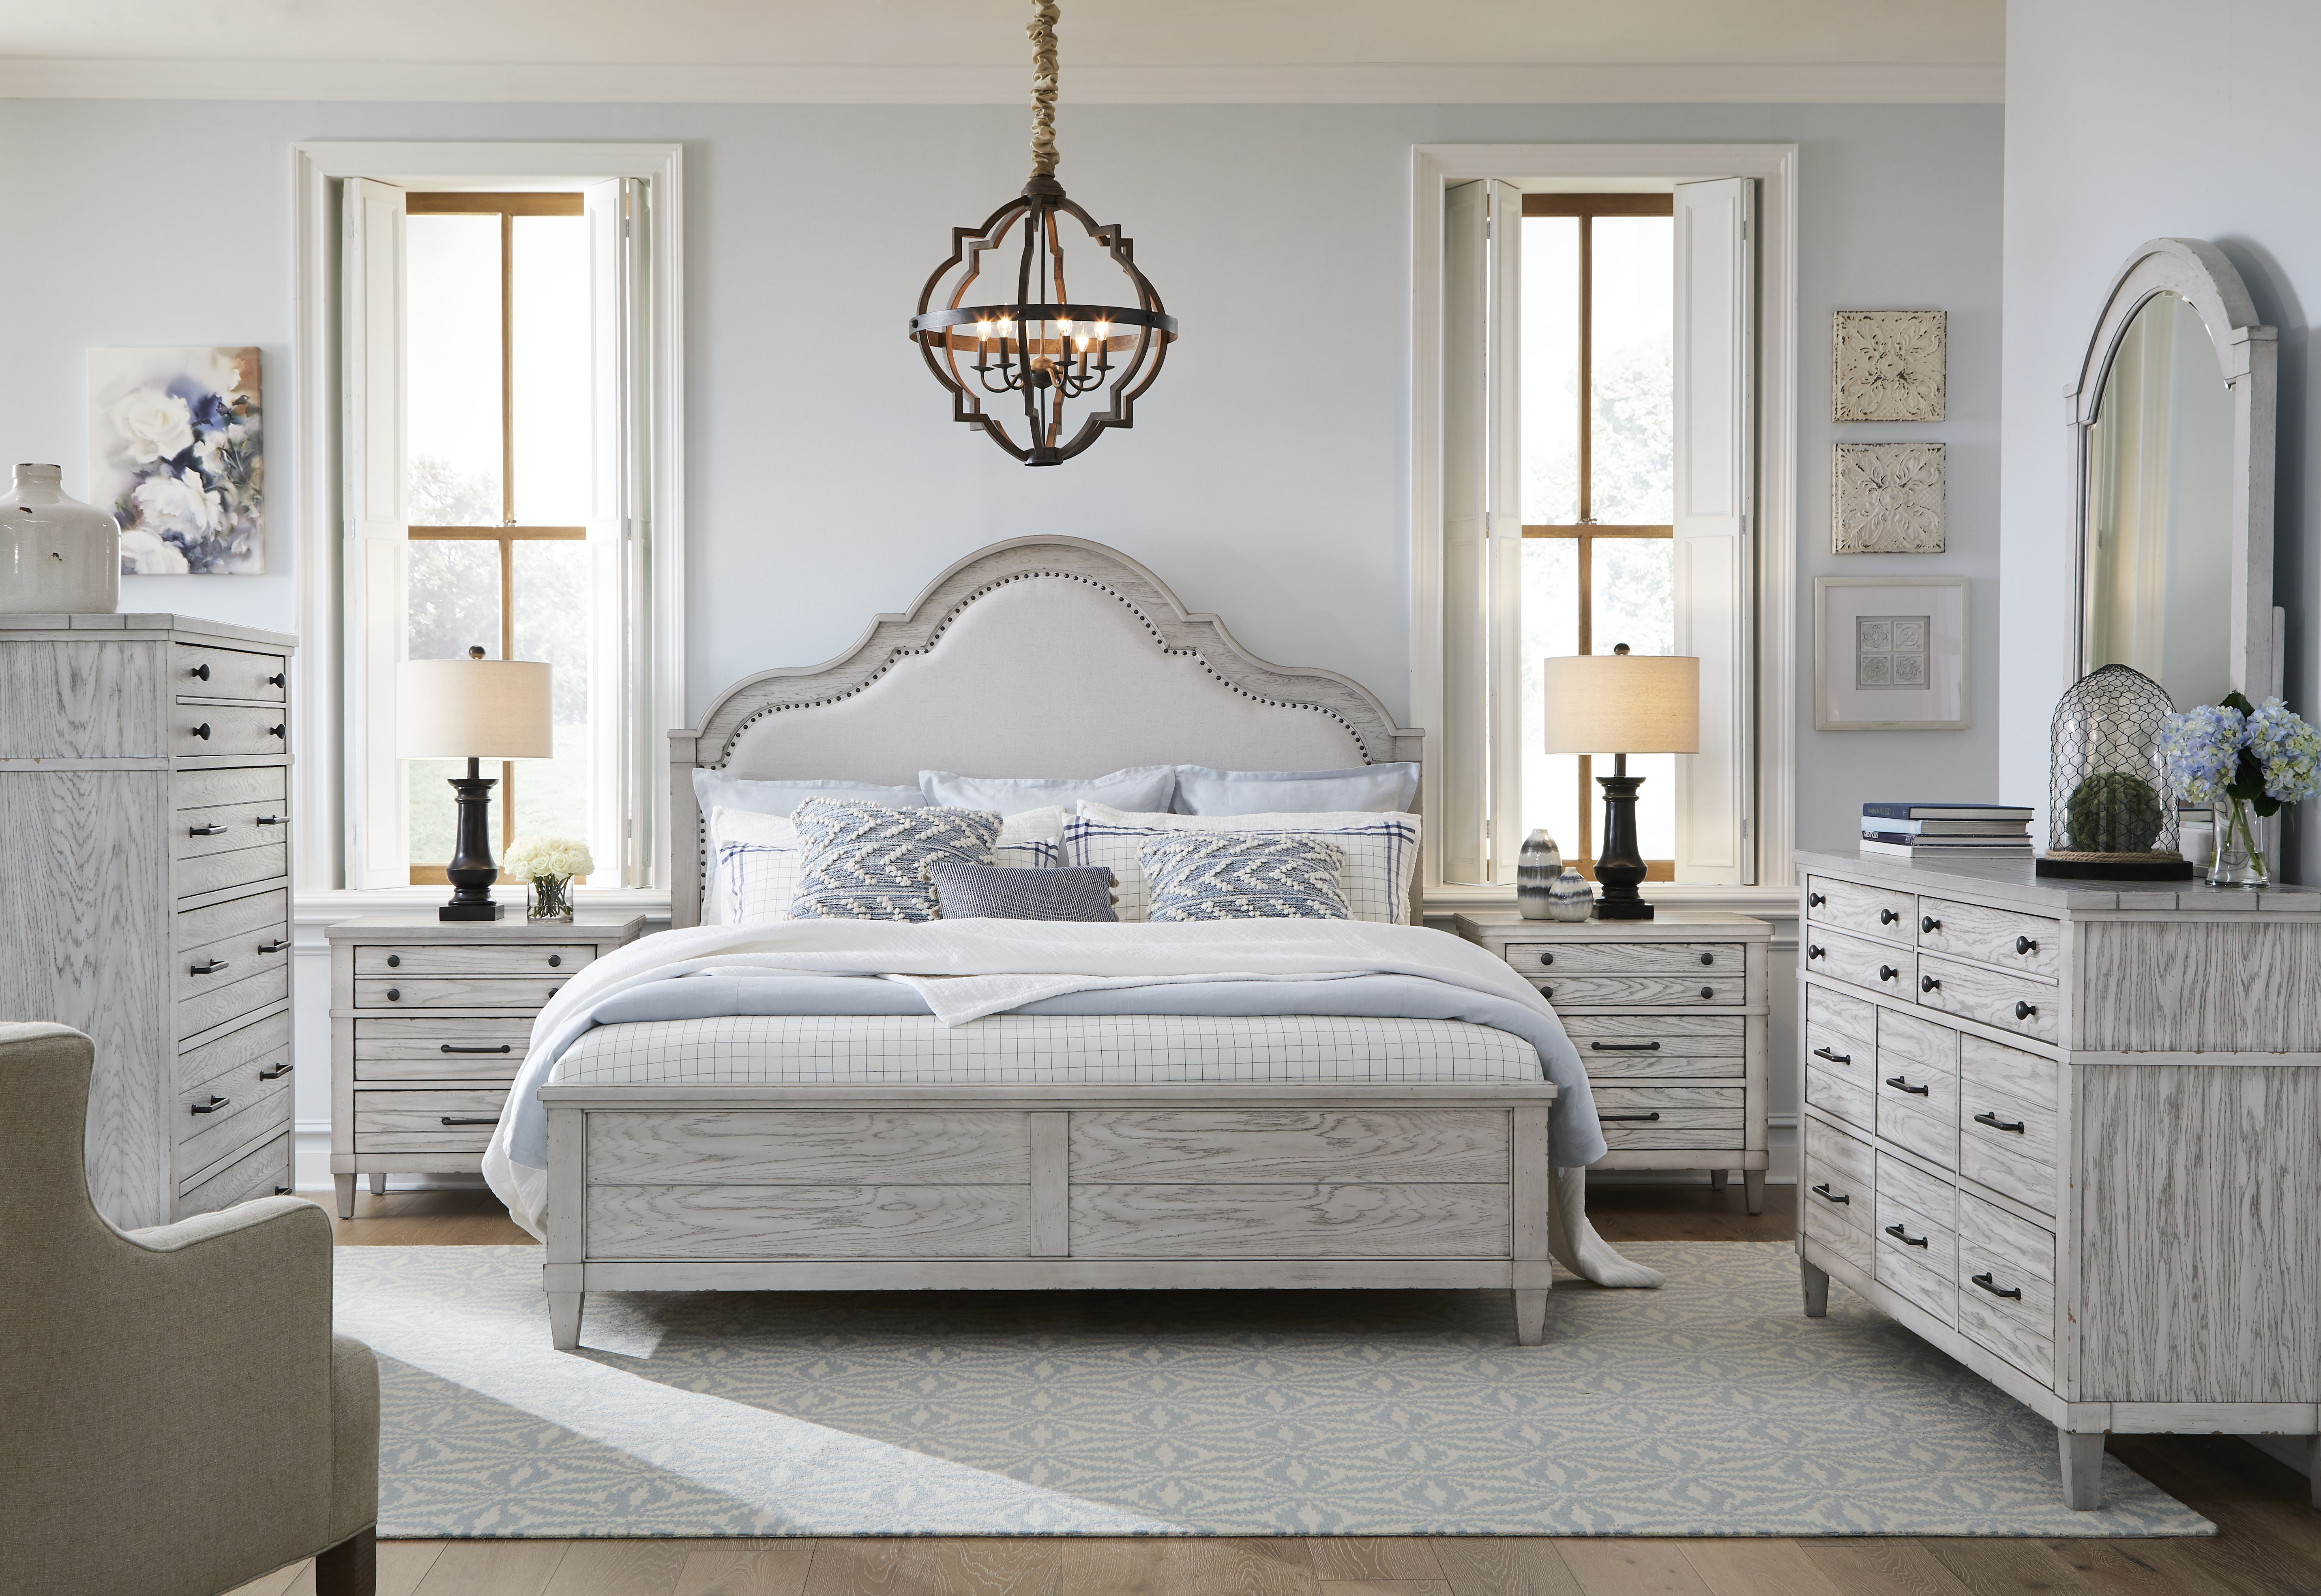 Belhaven Bedroom Weathered White Legacy Classic Furniture Belhaven Legacycla Classic Bedroom Furniture Master Bedroom Furniture Coastal Bedroom Furniture